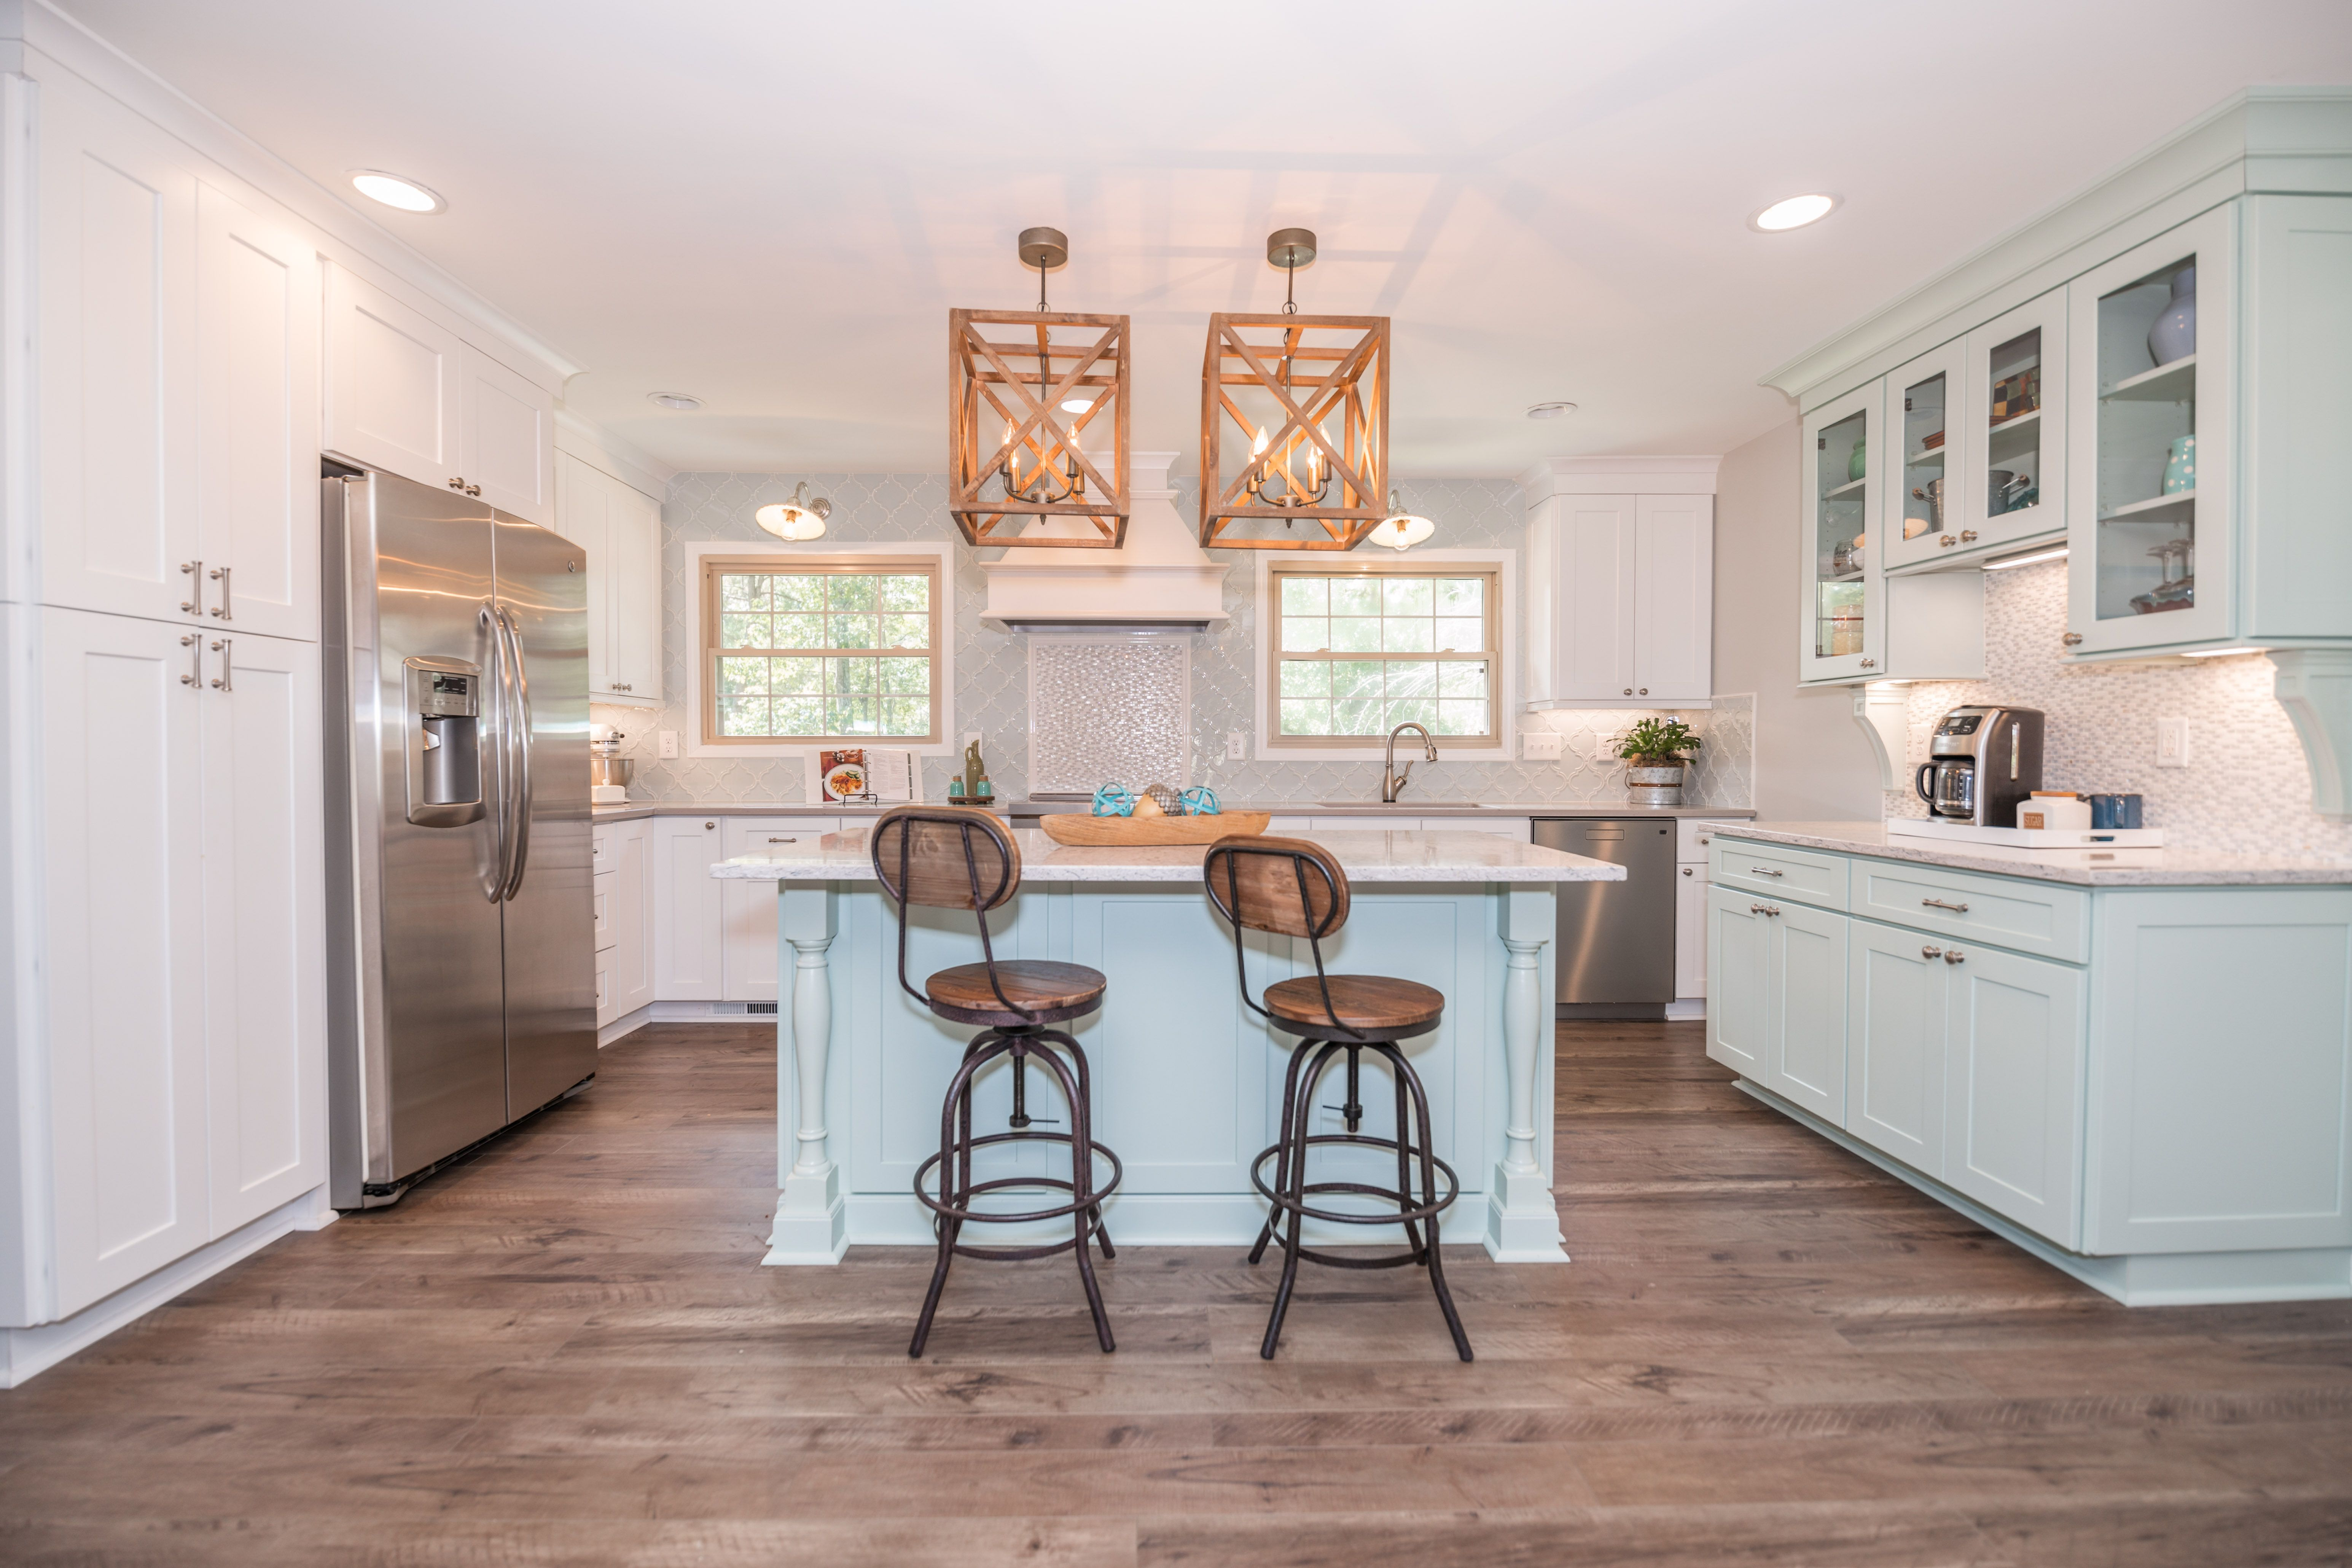 Pin By Muse Residential On Kitchens Residential Remodel Kitchen Remodel Construction Remodeling